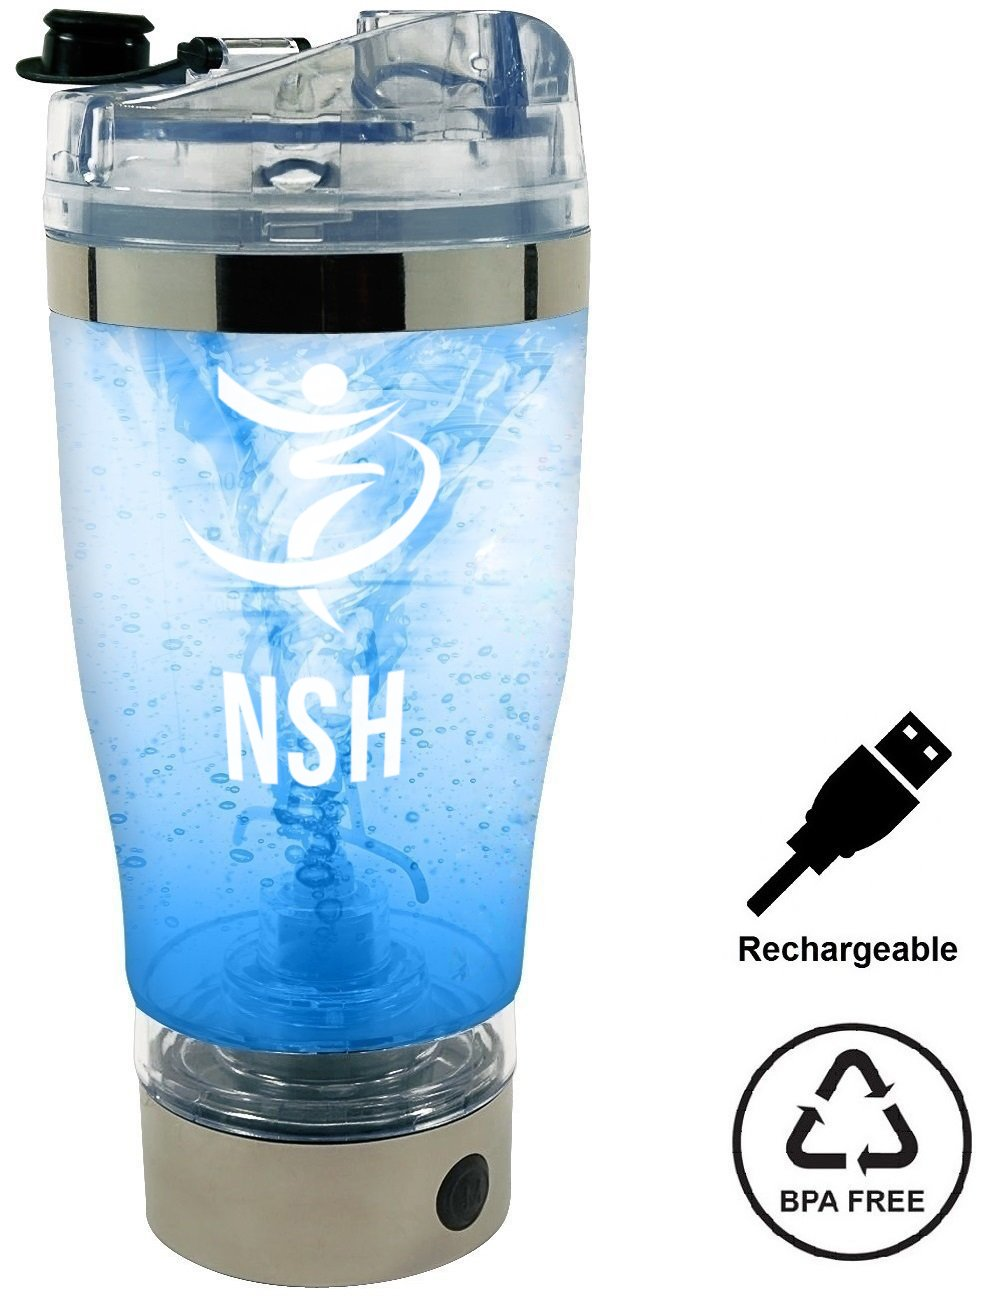 NSH Portable Vortex Mixer Battery Operated Powerful USB Rechargeable BPA Free